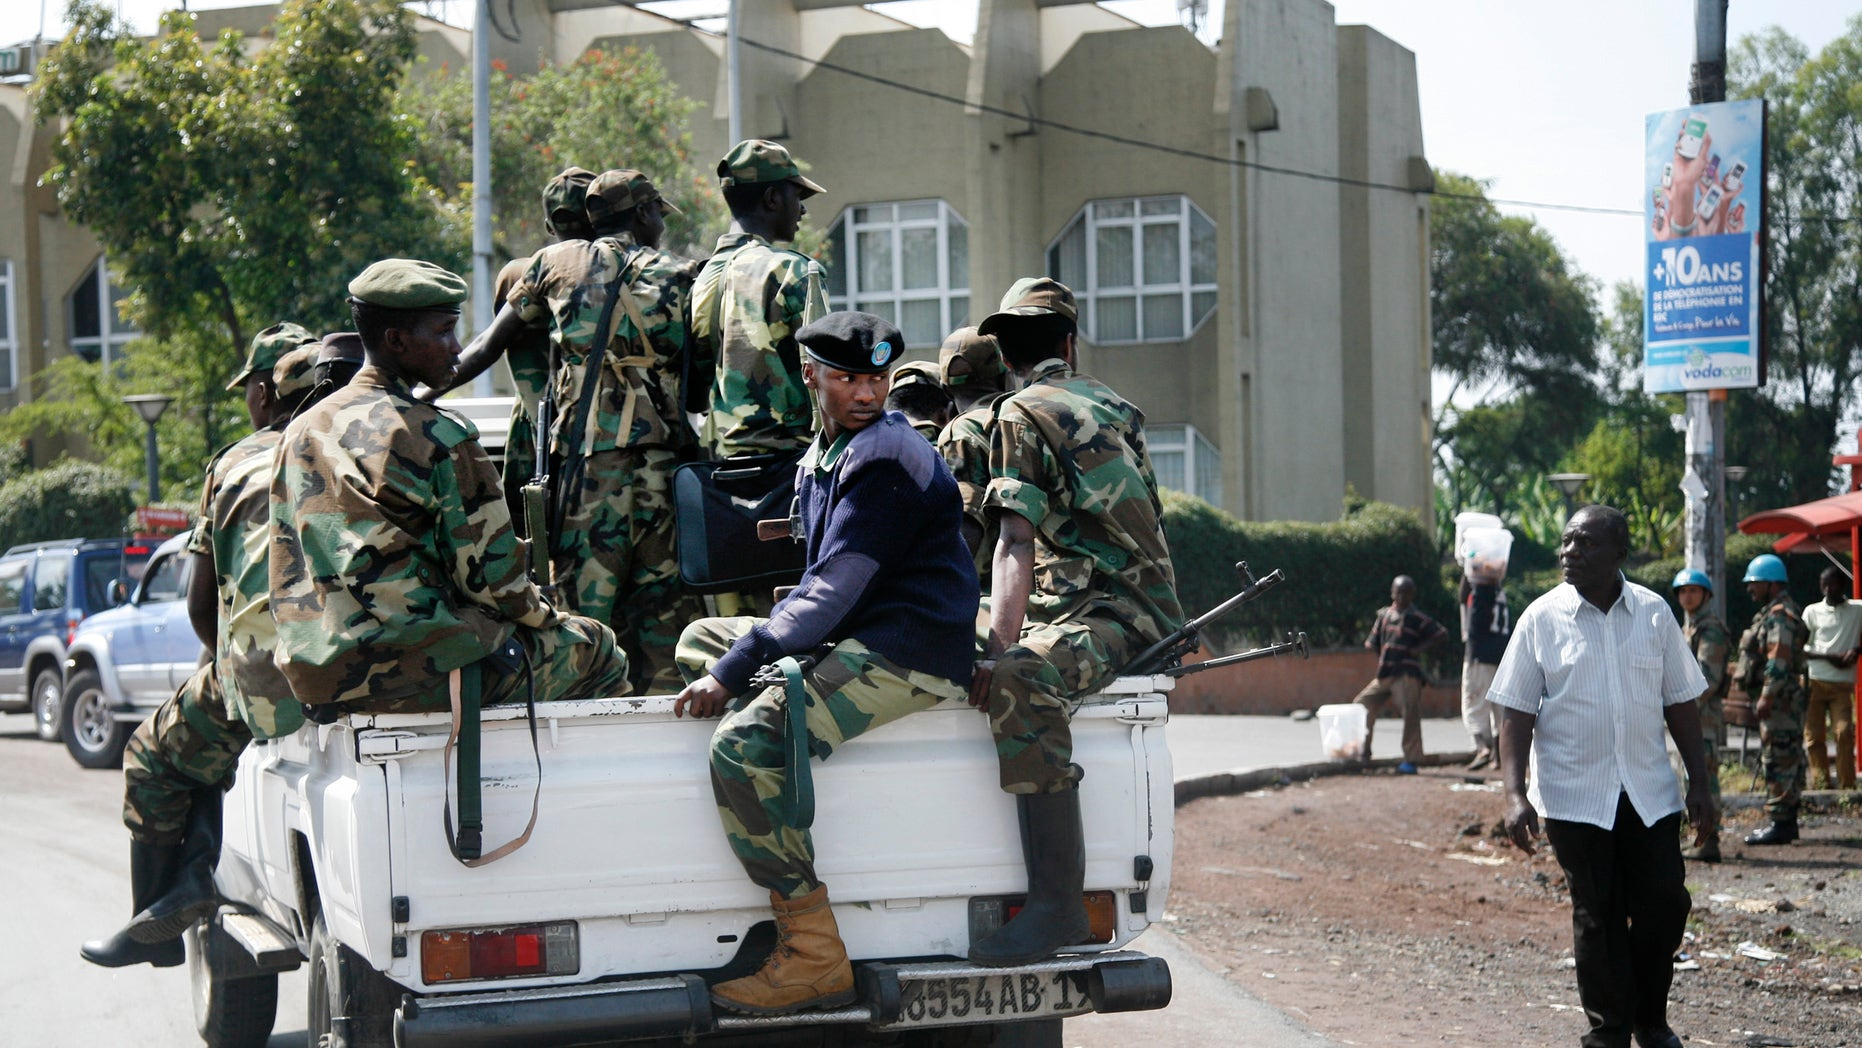 Nov. 26, 2012 -  Rebels patrol around Congo's Central Bank in Goma, eastern Congo.